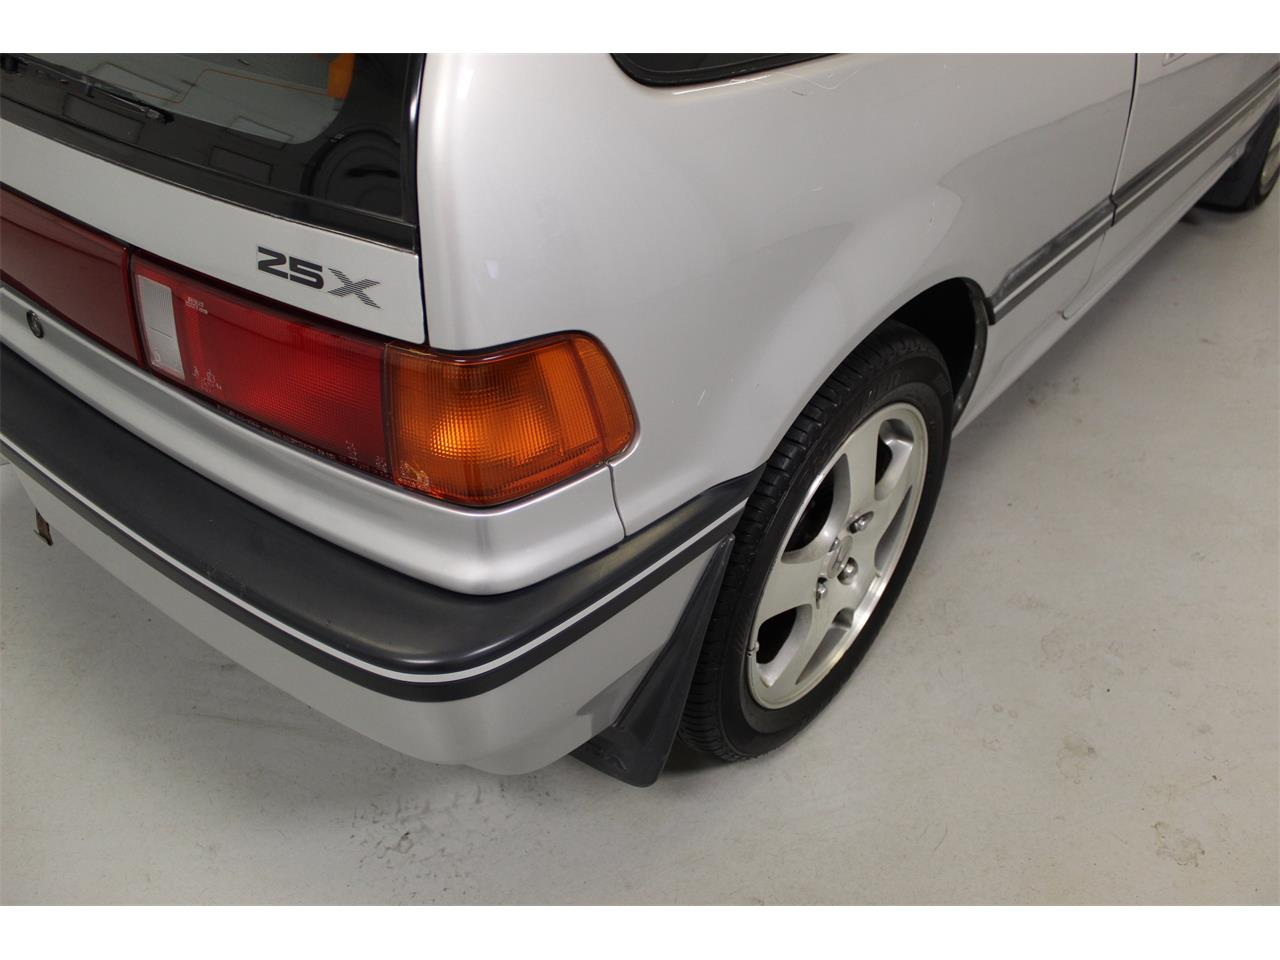 Large Picture of '89 Honda Civic located in Virginia Offered by Duncan Imports & Classic Cars - P9OJ